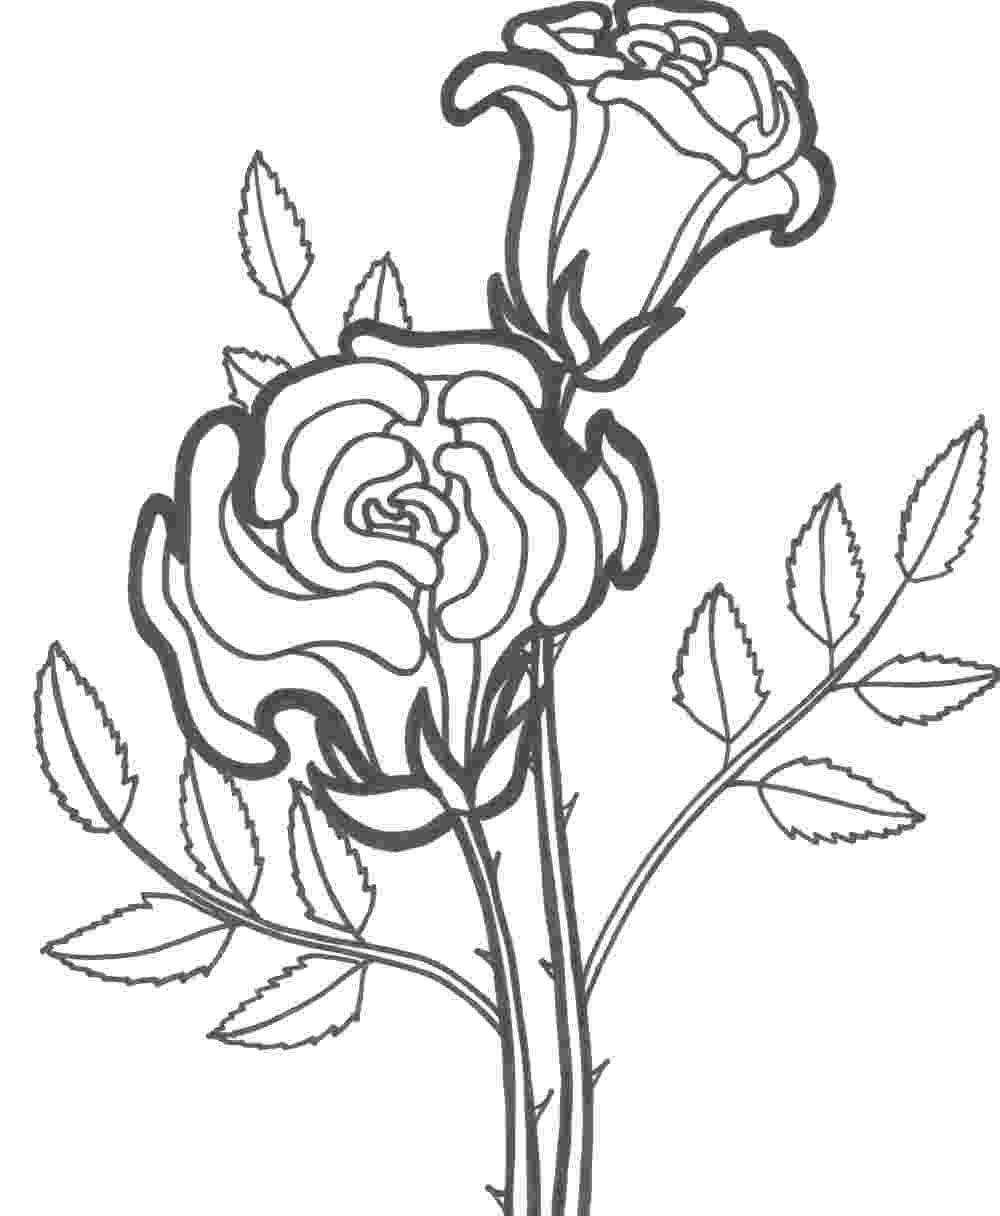 printable roses free printable roses coloring pages for kids roses printable 1 1